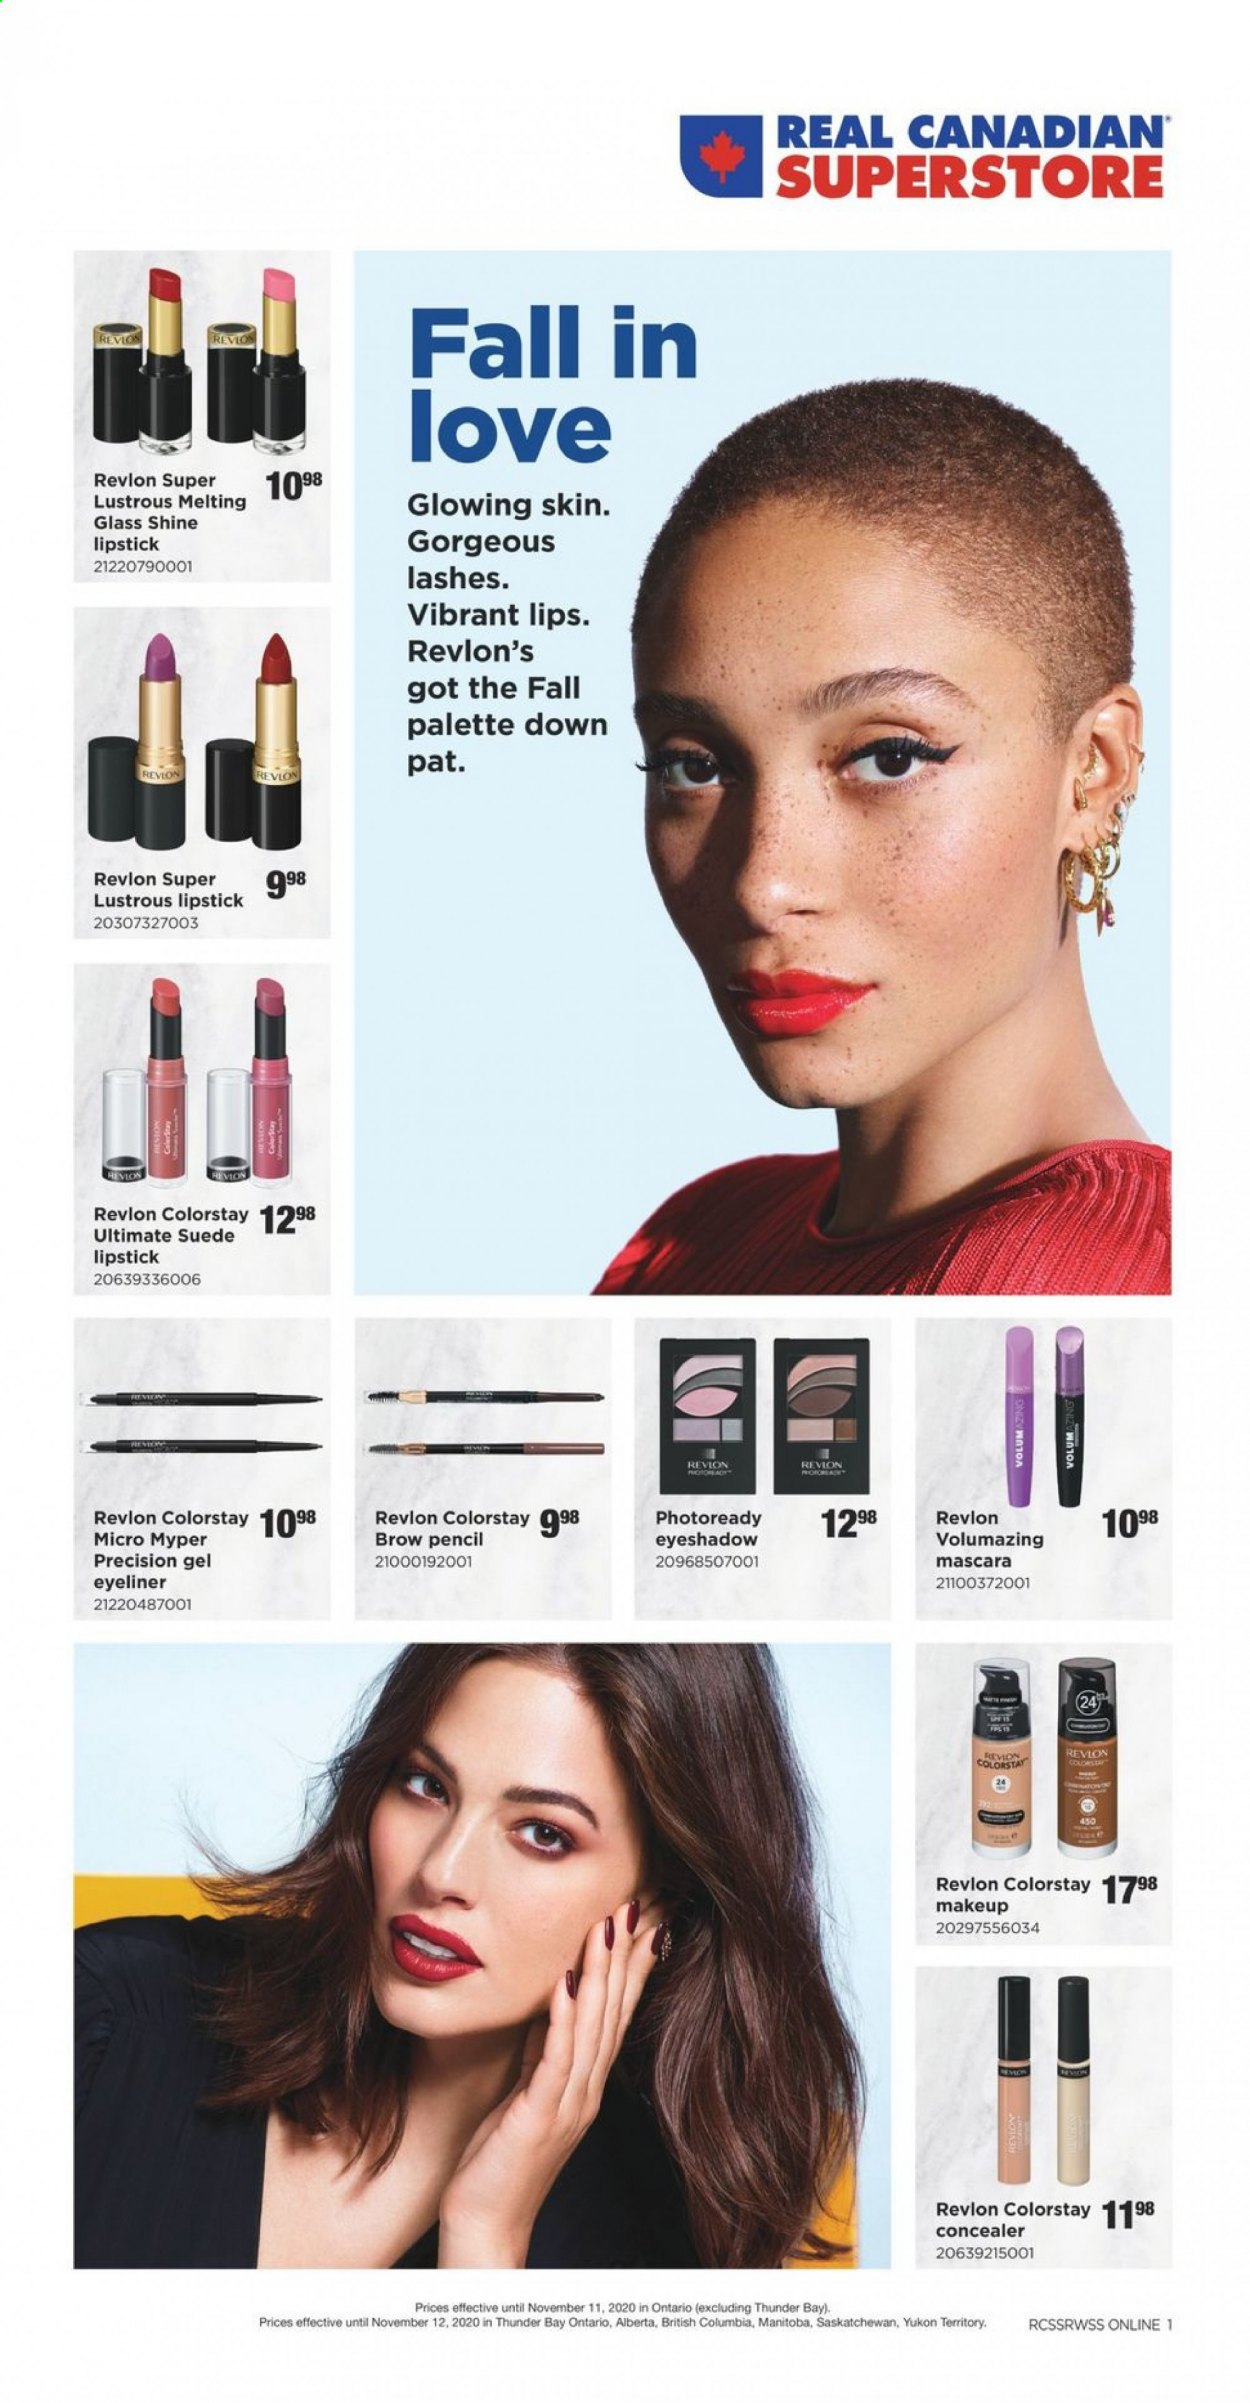 Real Canadian Superstore Flyer - October 22, 2020 - November 12, 2020 - Sales products - concealer, columbia, eyeshadow, lipstick, makeup, mascara, revlon, pet, palette, eyeliner, glass. Page 1.